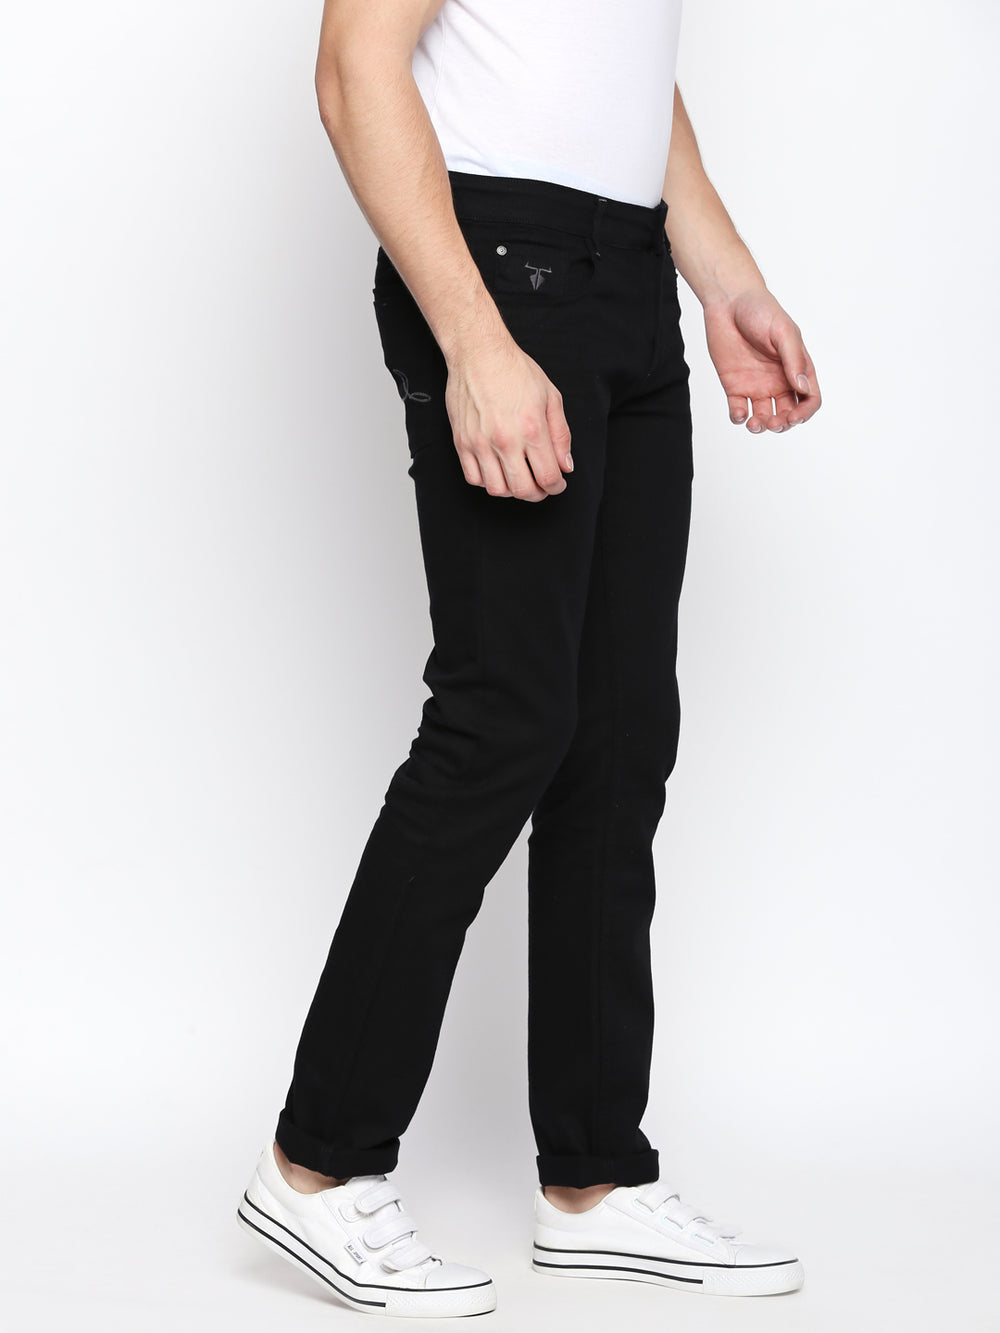 Disrupt Black Slim Fit Stretchable Jeans For Men's